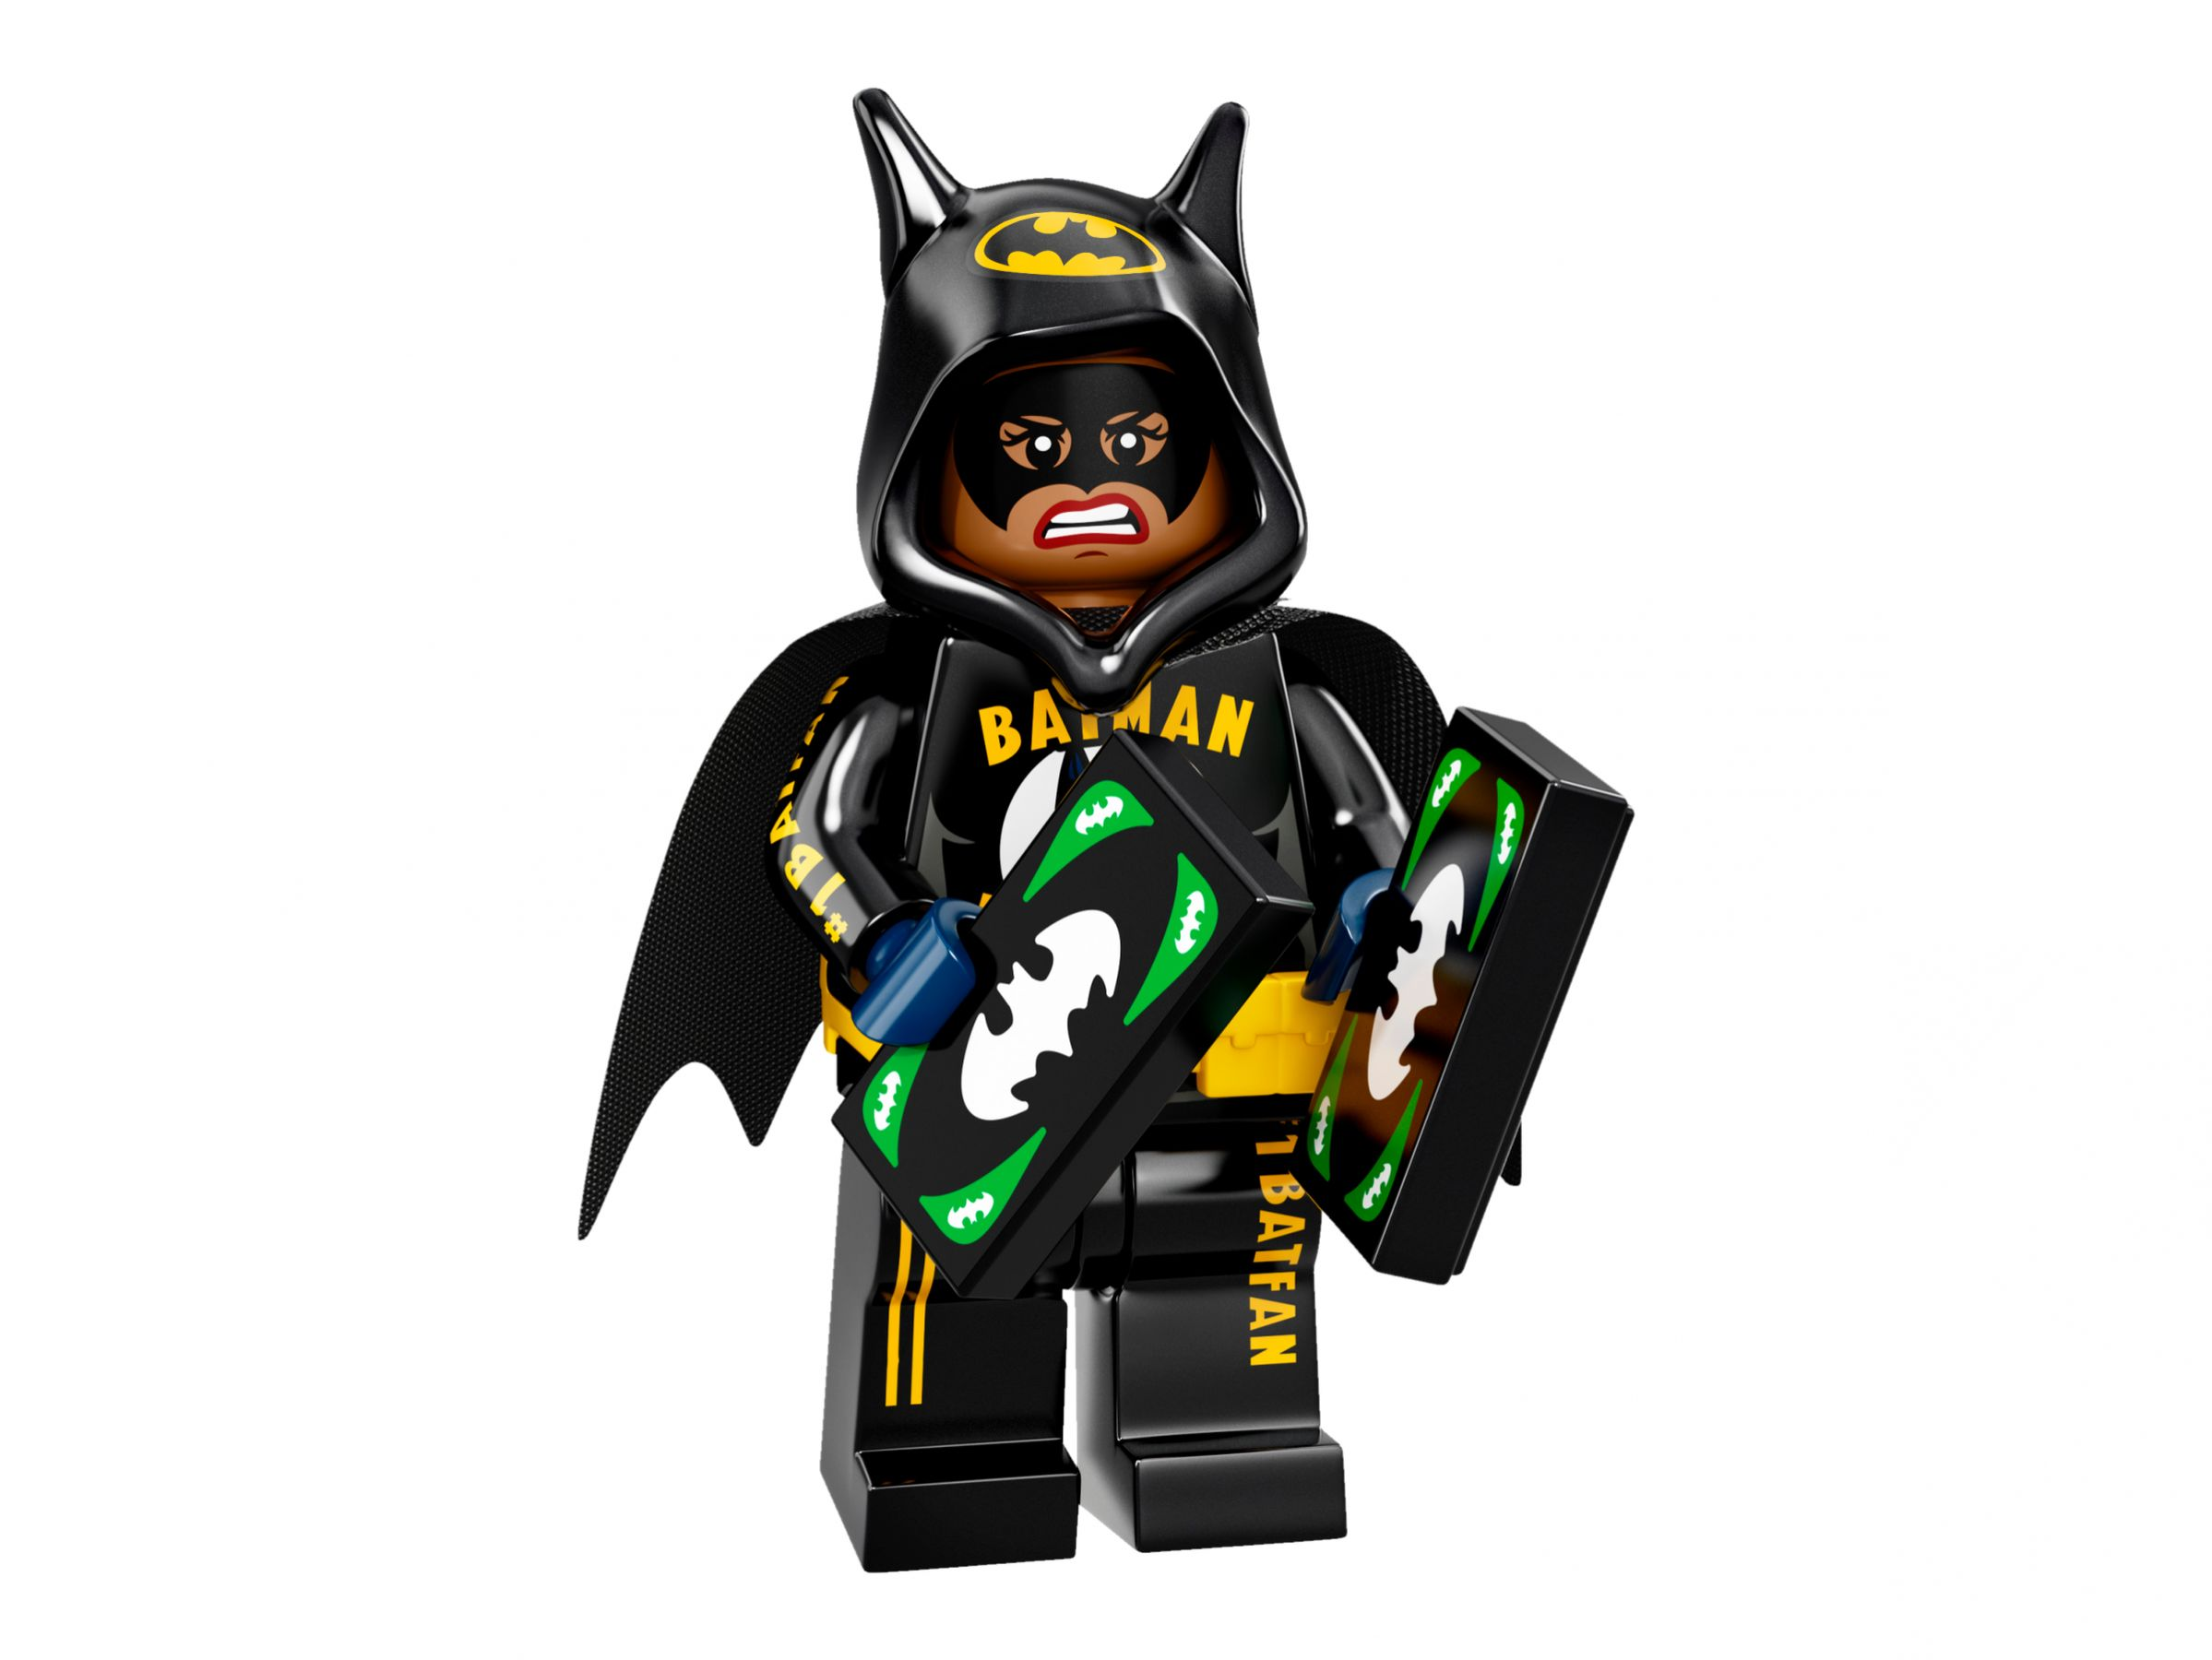 LEGO Collectable Minifigures 71020 LEGO® Batman Movie Minifiguren Serie 2 LEGO_71020_alt2.jpg